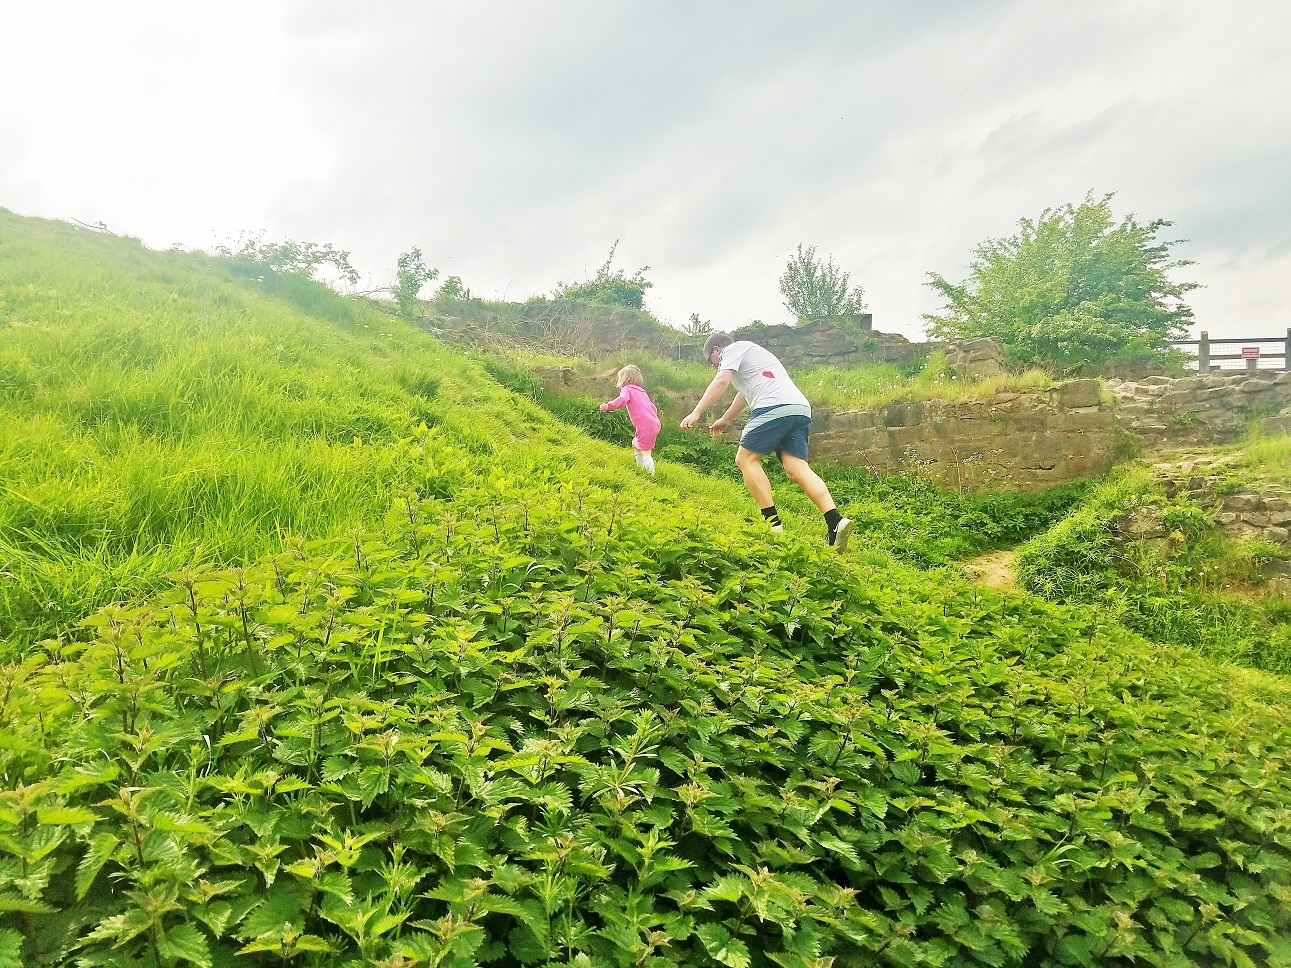 dictator mummy - child and father climbing a steep hill. Father holds hands out to steady child